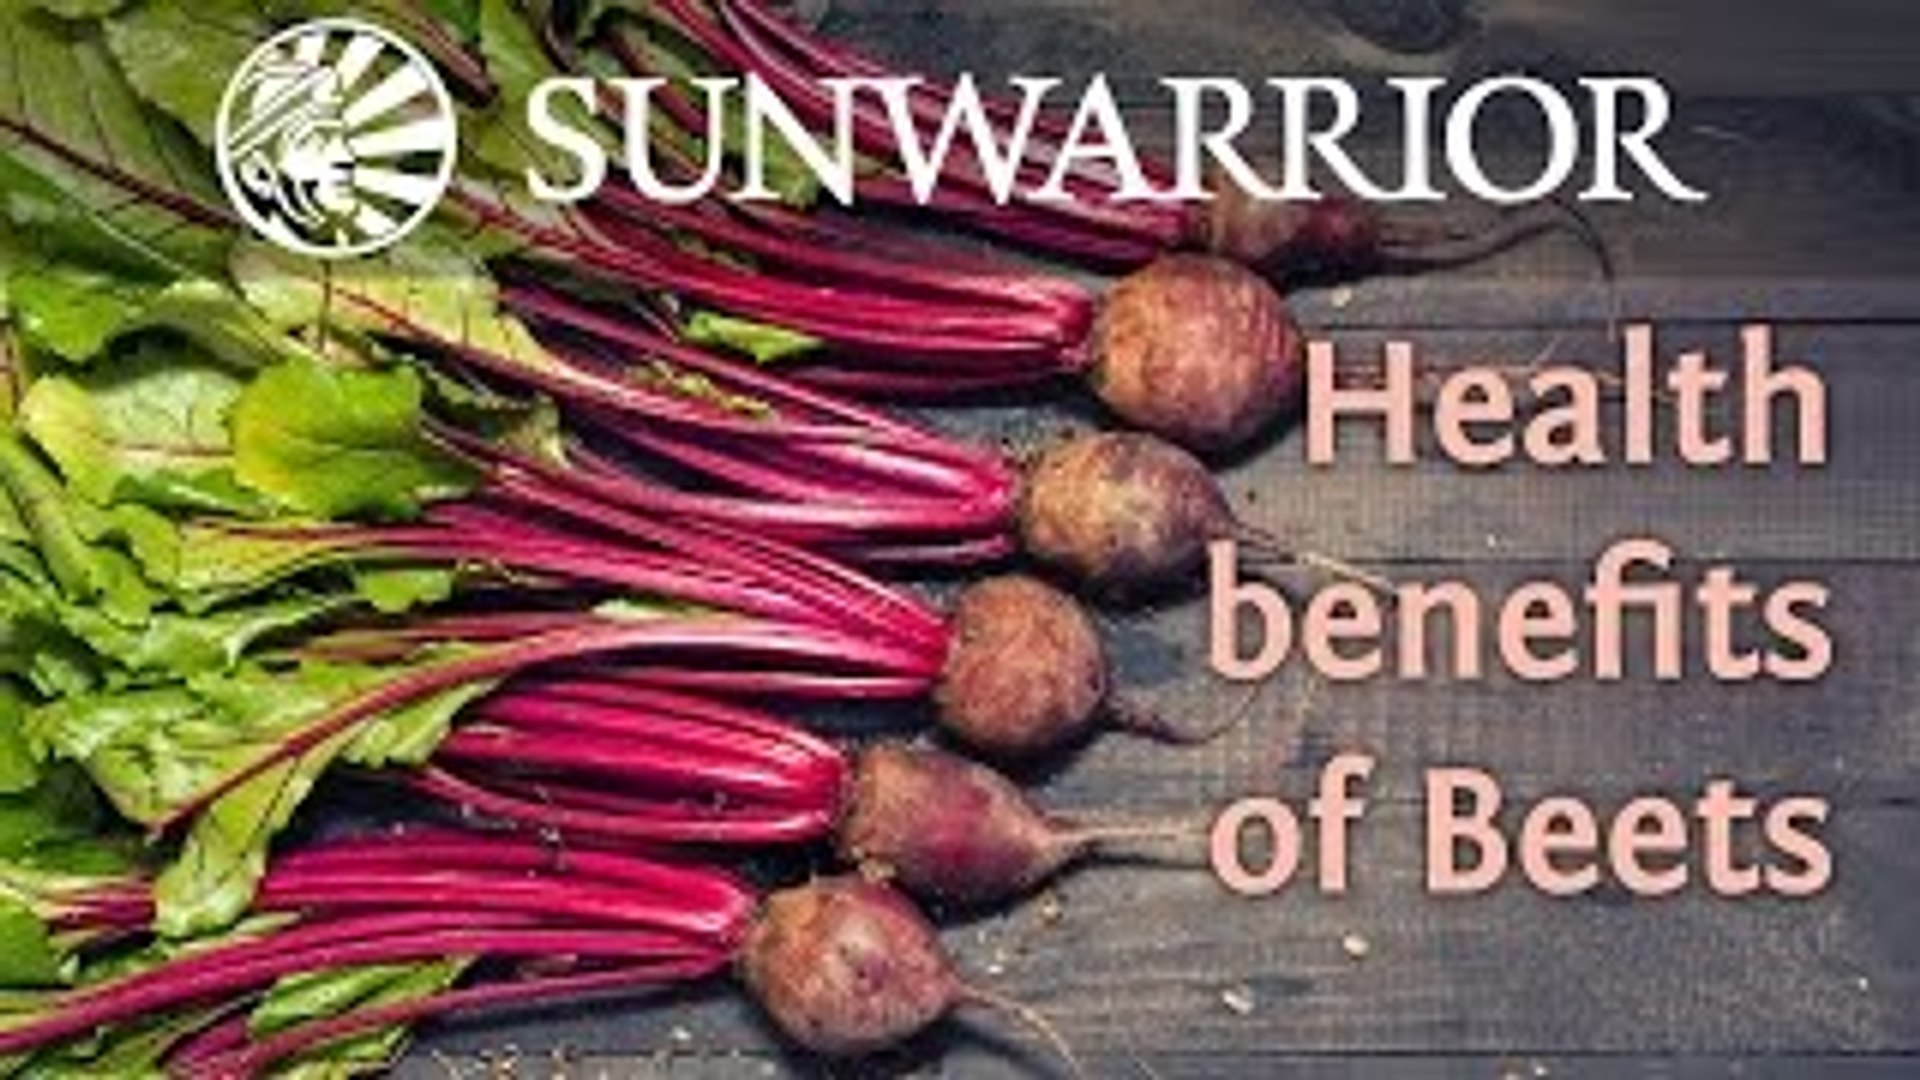 Beetroot Health Benefits of Beets - English Video